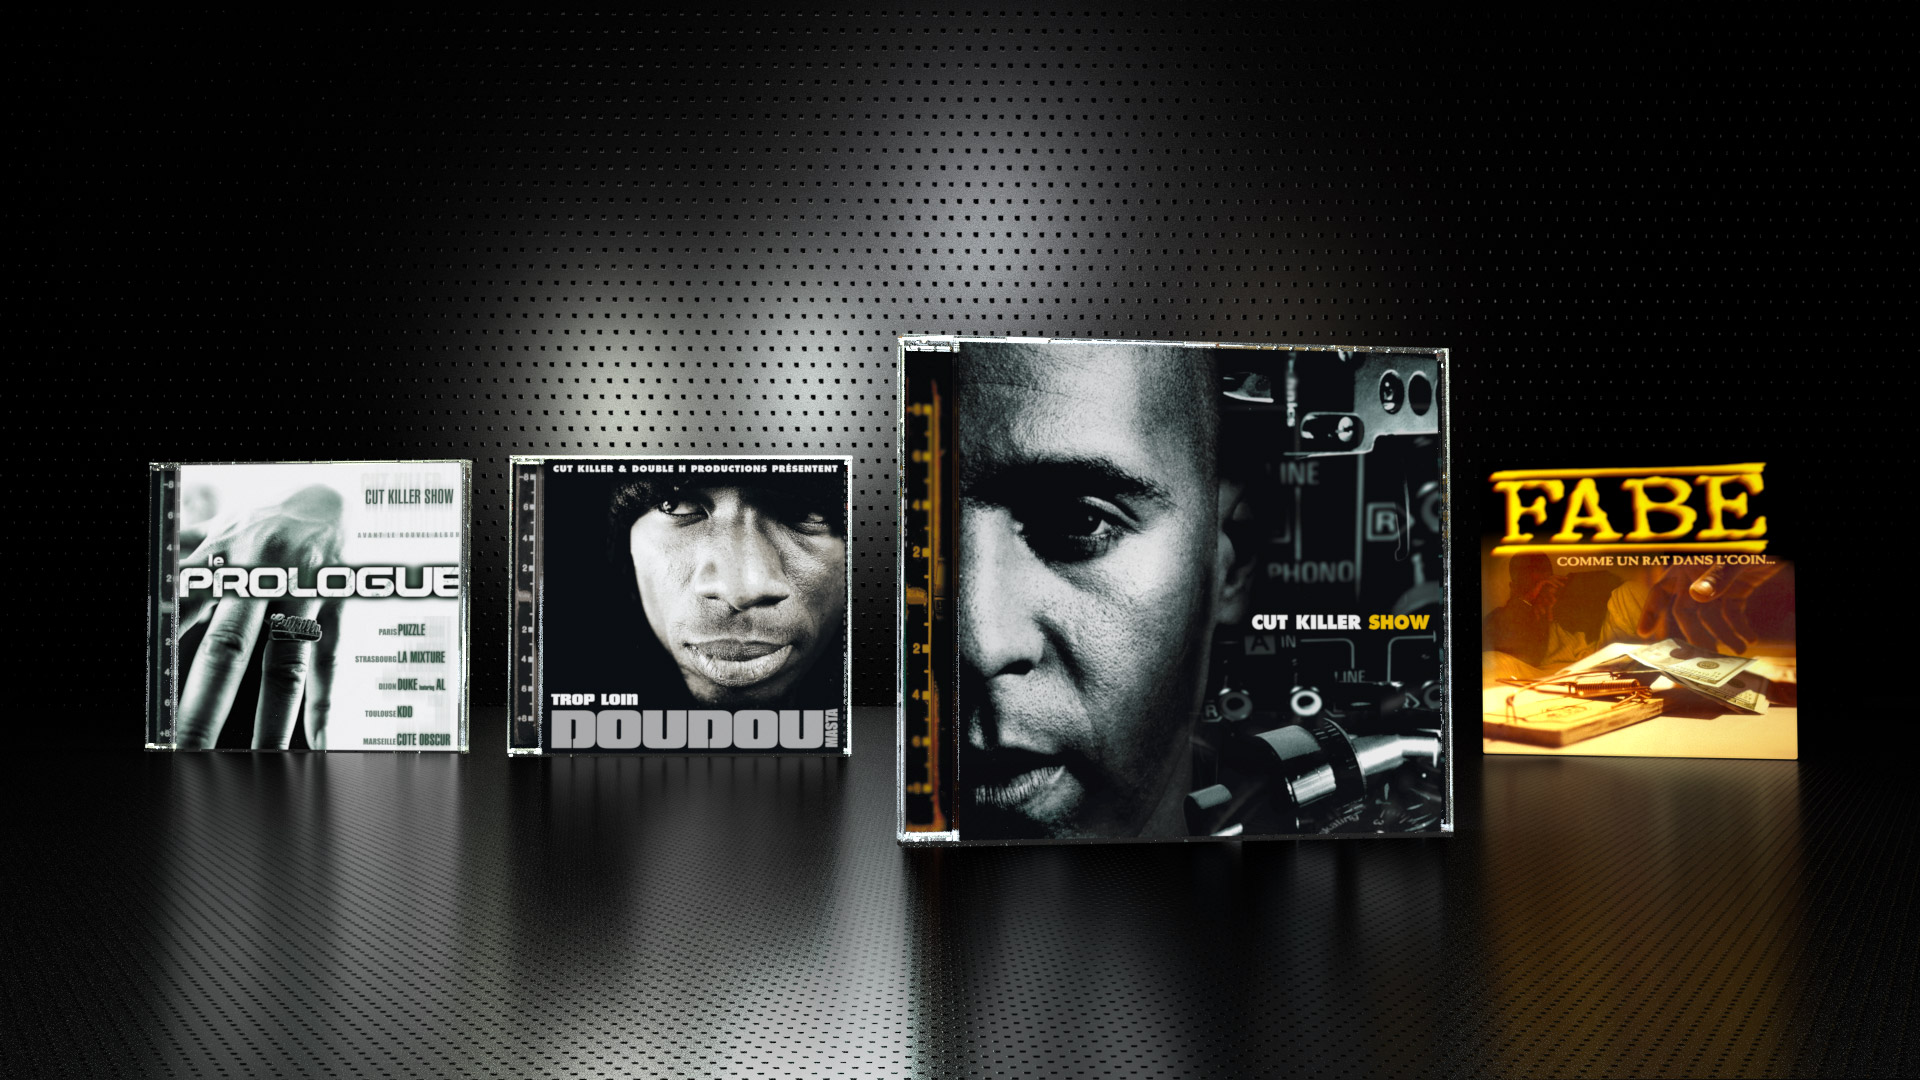 Album design of Cut Killer Show 1 and 2, Single for Masta Doudou, Fabe...Main Photos by Armen Djerrahian.